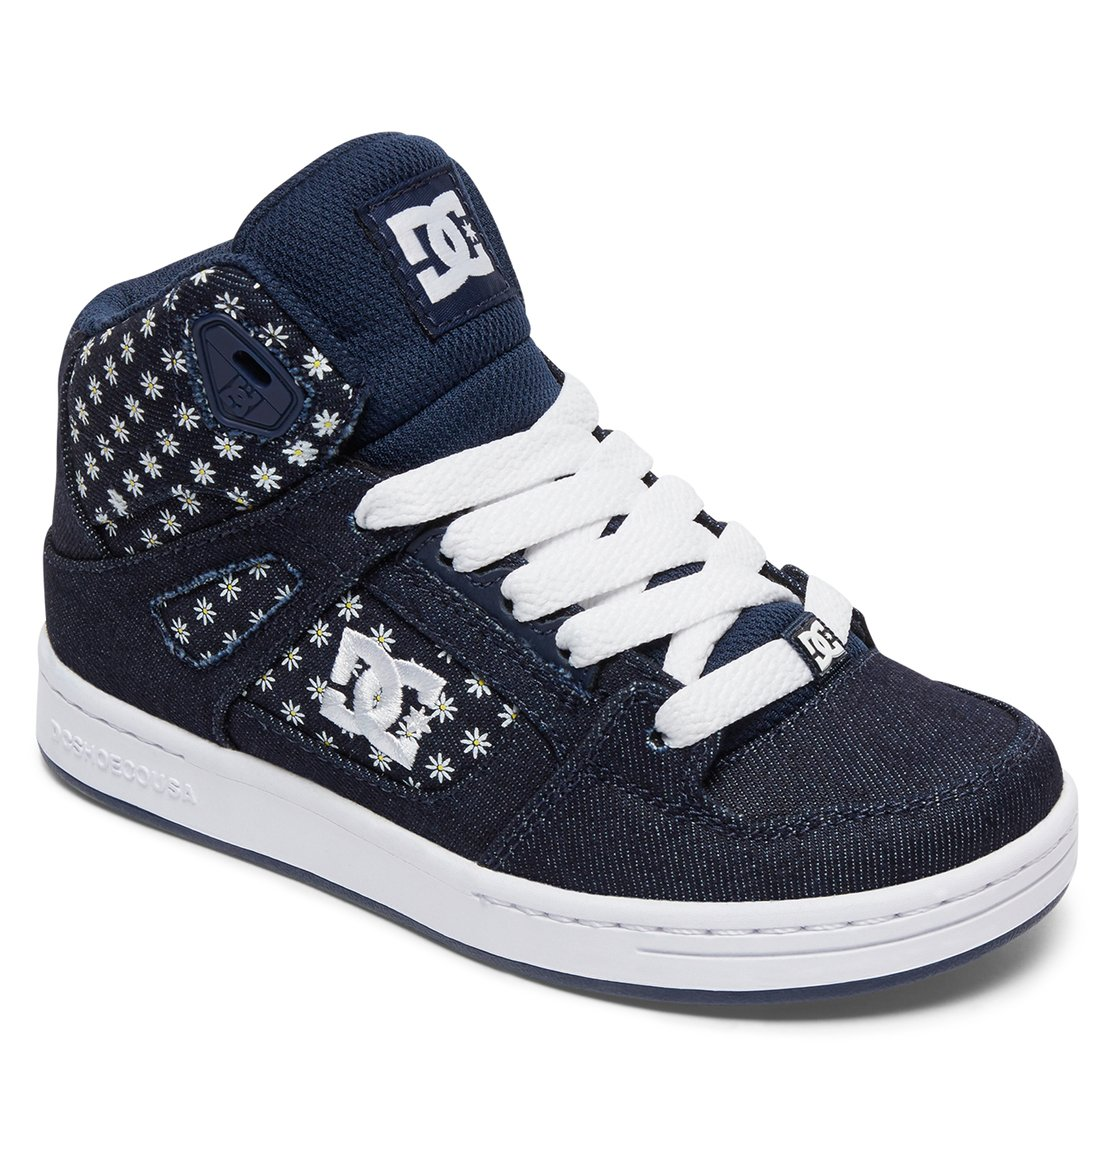 Baskets montantes DC shoes Rebound SE